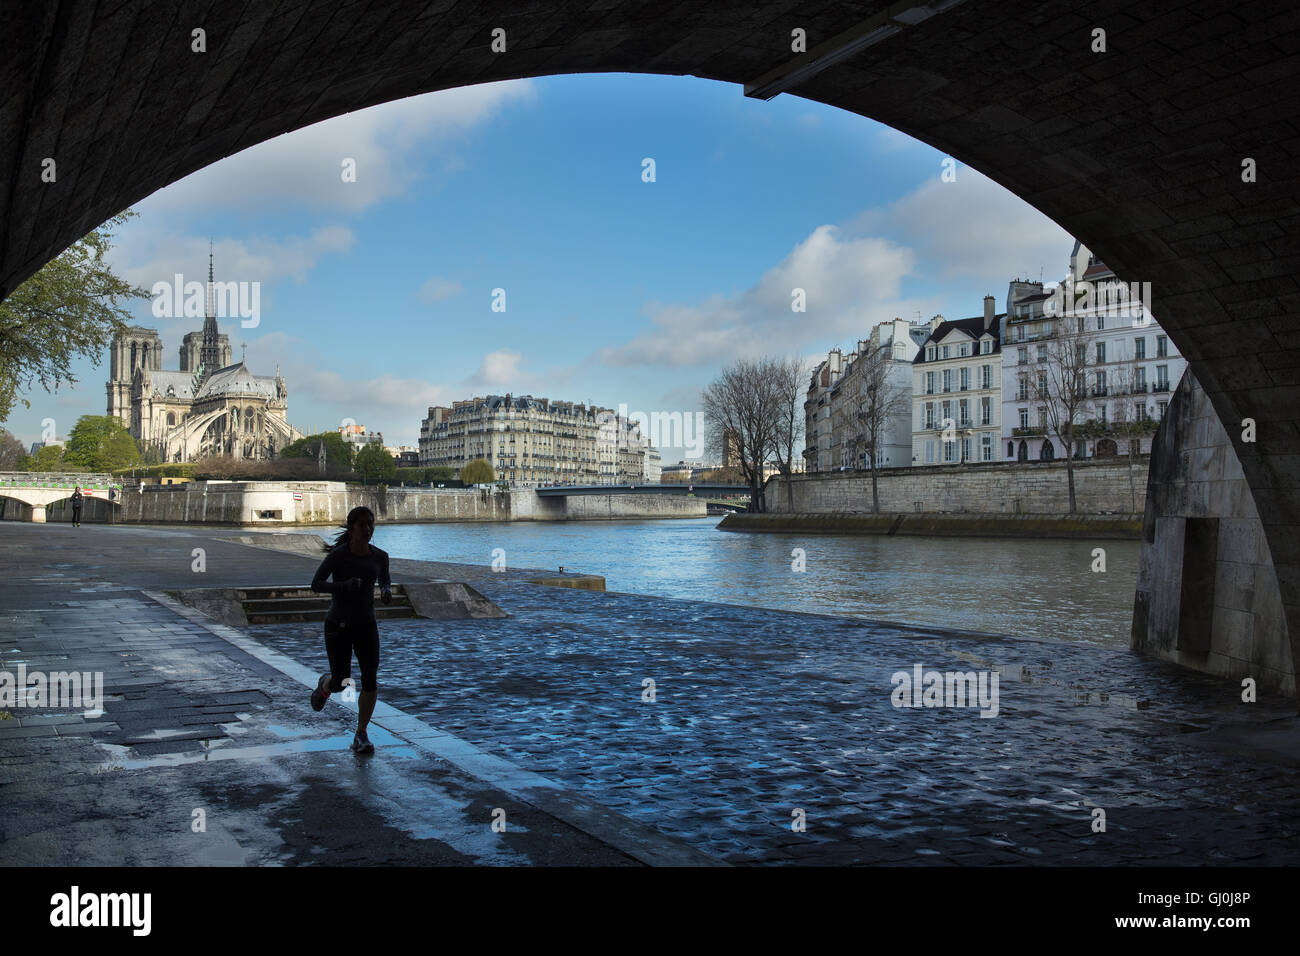 jogger running under the Pont de la Tournelle on the left bank of the River Seine, Paris, France - Stock Image